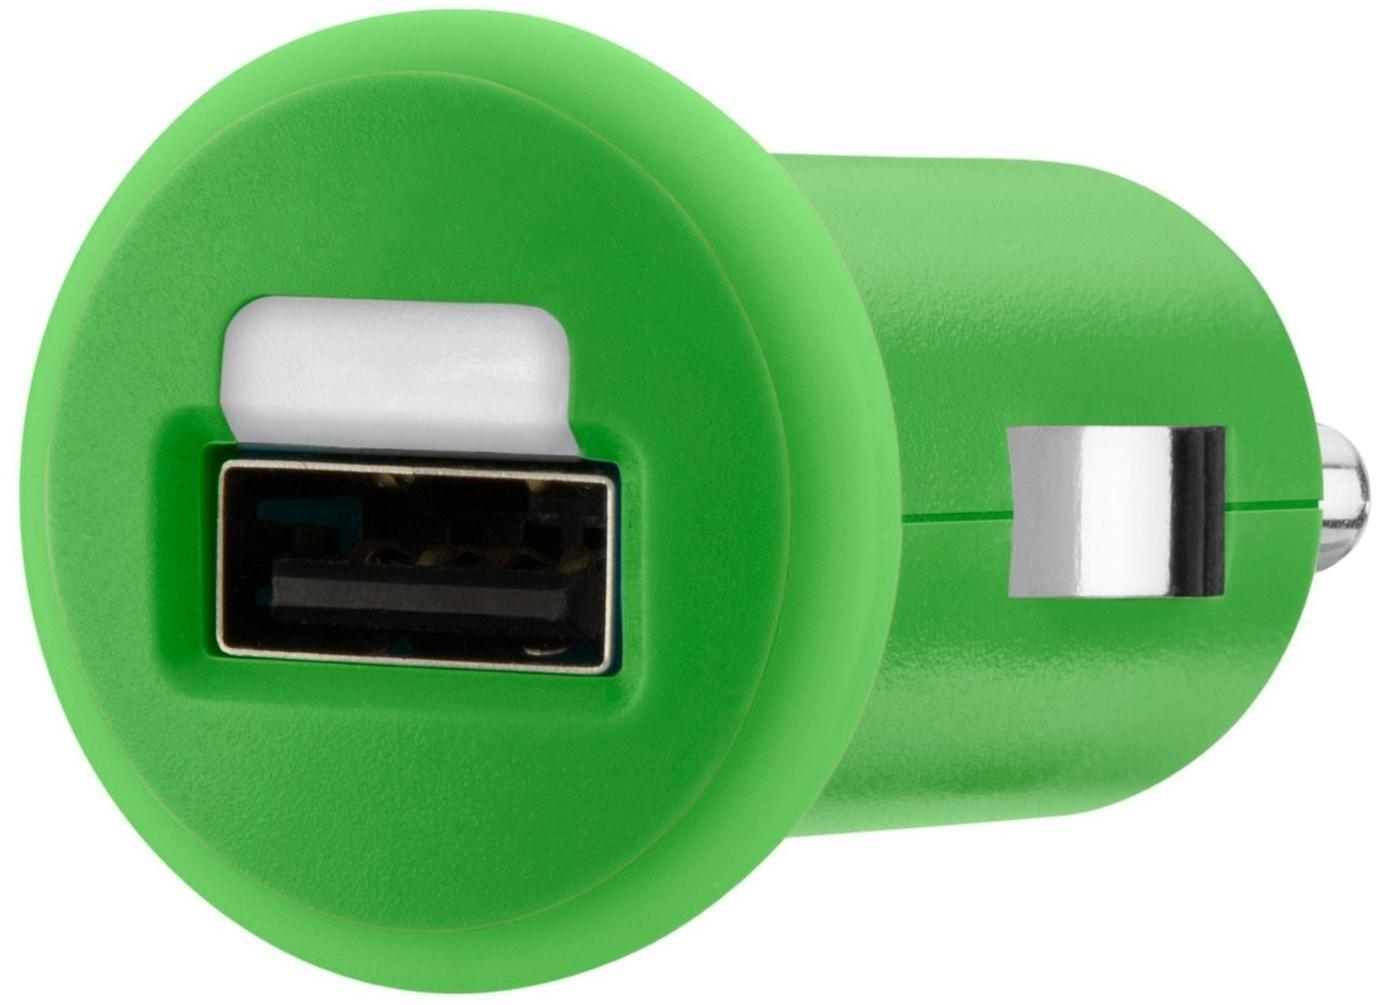 Belkin Auto Adapter for iPad iPhone iPod USB Device in Green